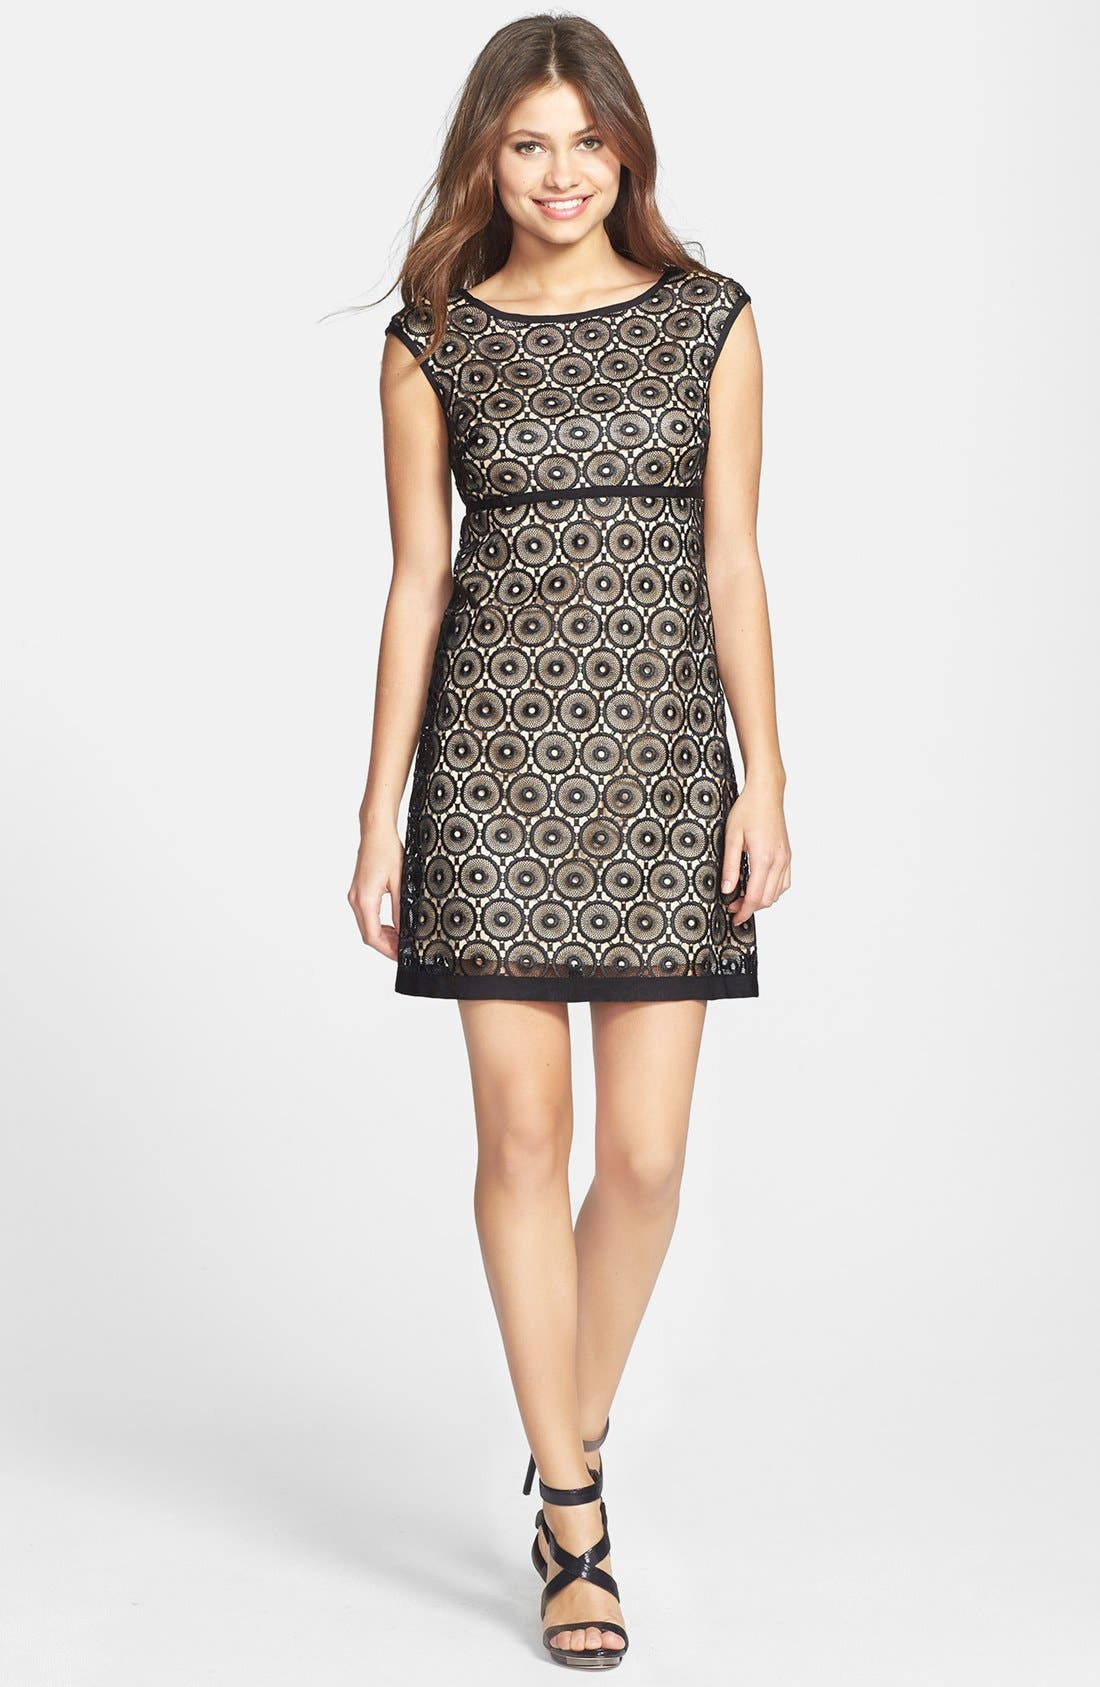 Alternate Image 1 Selected - Laundry by Shelli Segal Eyelet Lace Fit & Flare Dress